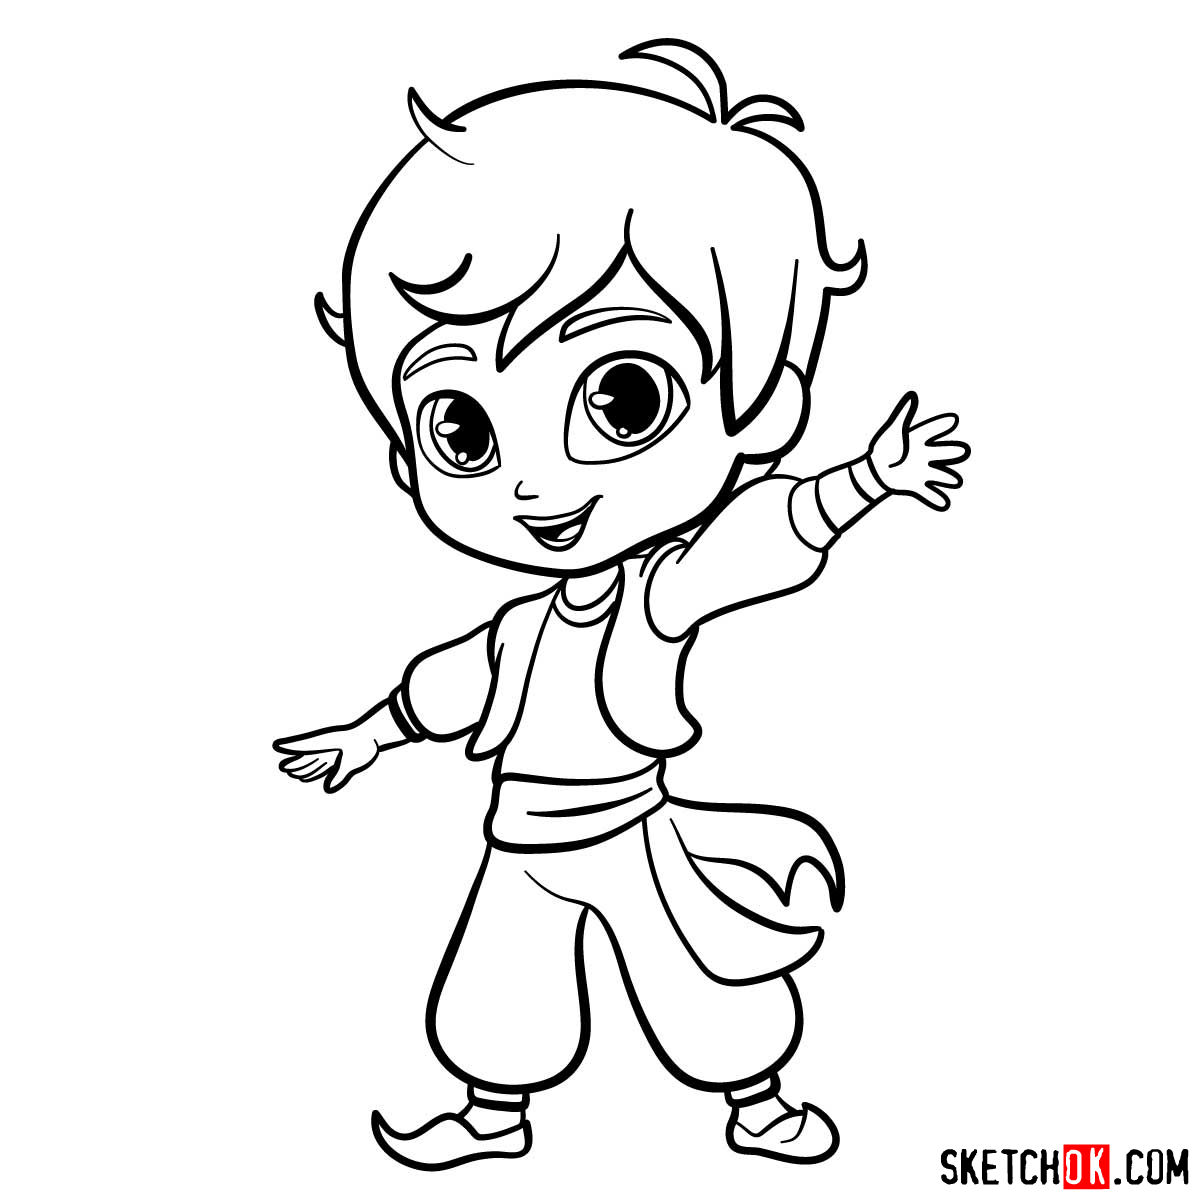 How to draw Zac from Shimmer and Shine